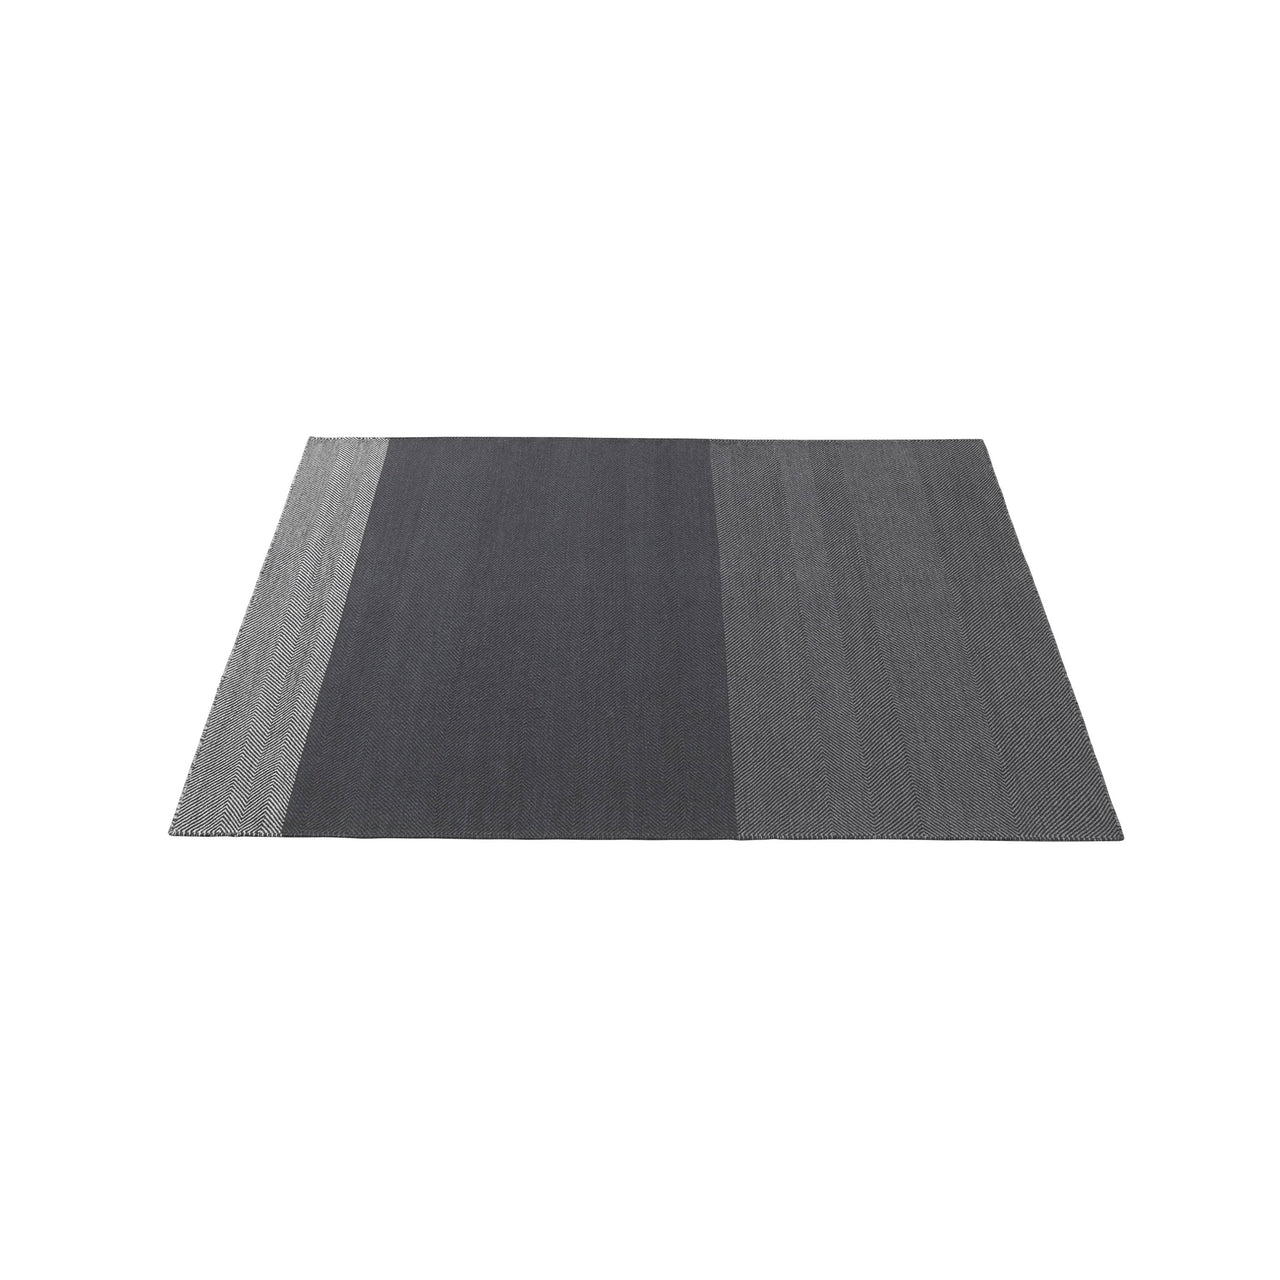 Varjo Rug: Small + Dark Grey